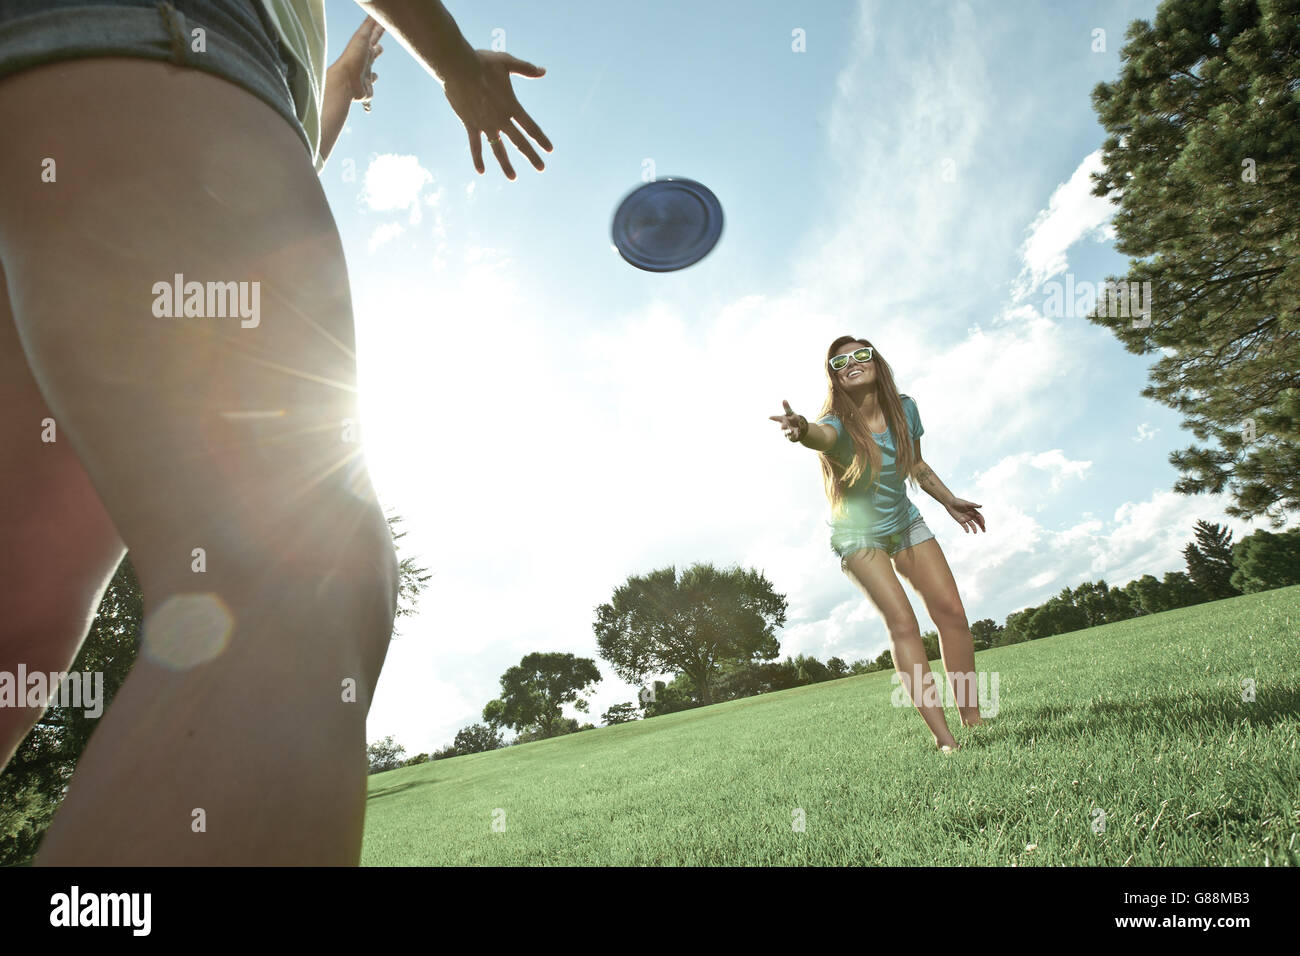 Two women playing game of Frisbee in park - Stock Image